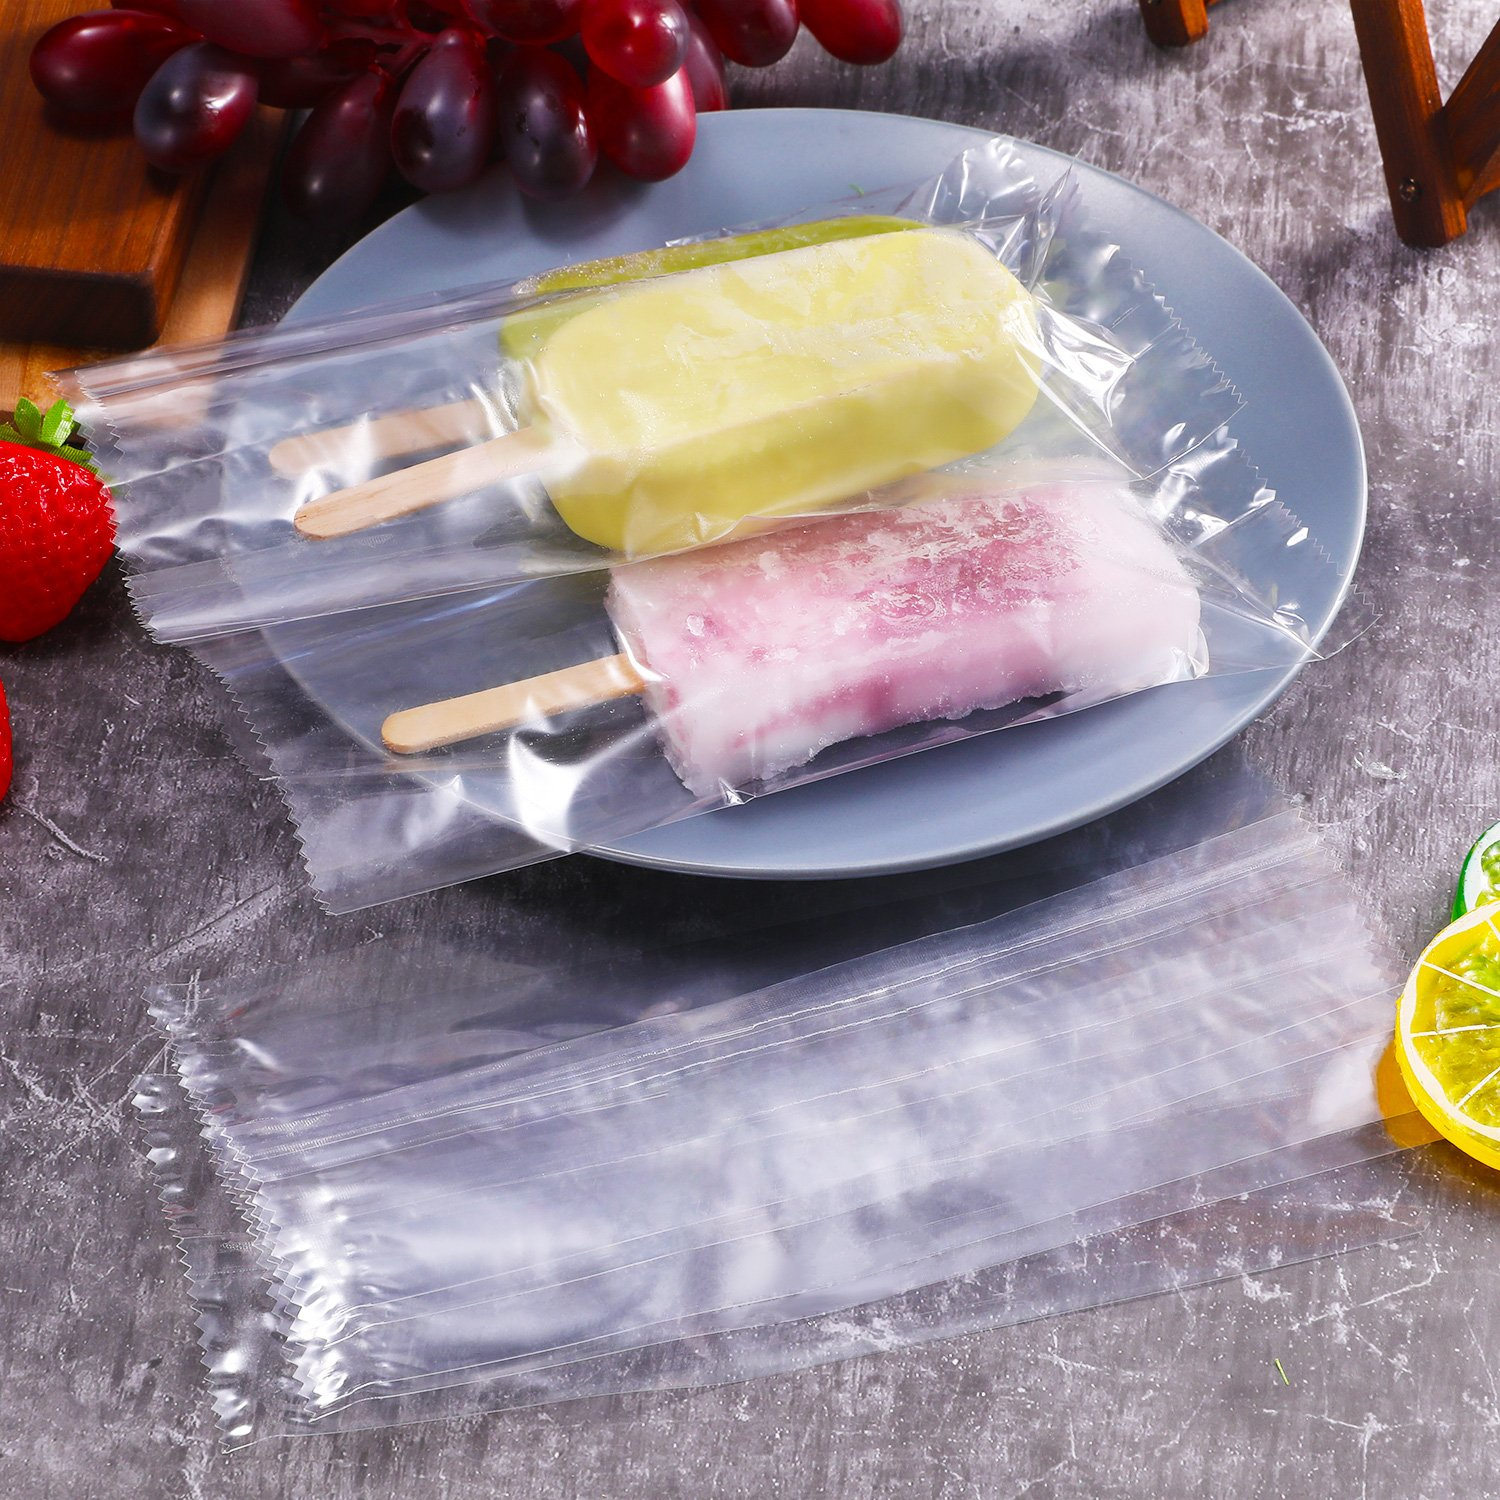 Gejoy 300 Pack Disposable Popsicle Bags Ice Pop Bags Plastic Candy Bags Hot Sealing Packing Containers for Ice Pop Making Wedding Favor Gifts